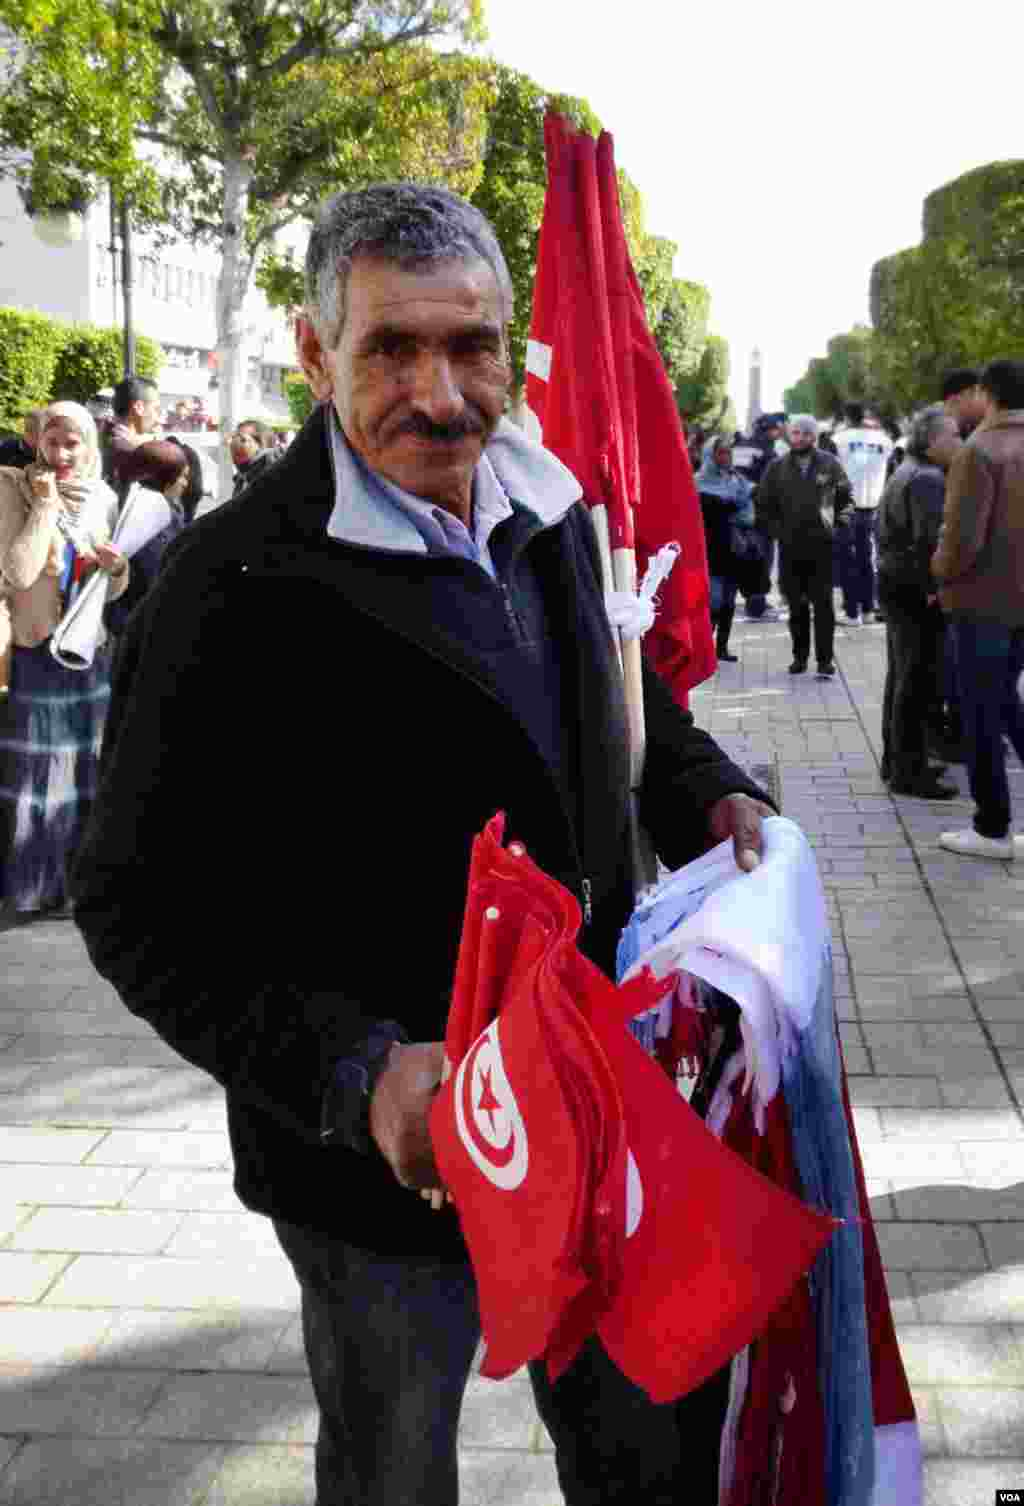 An Ennahda supporter selling flags in Tunis. (Henry Ridgewell for VOA)